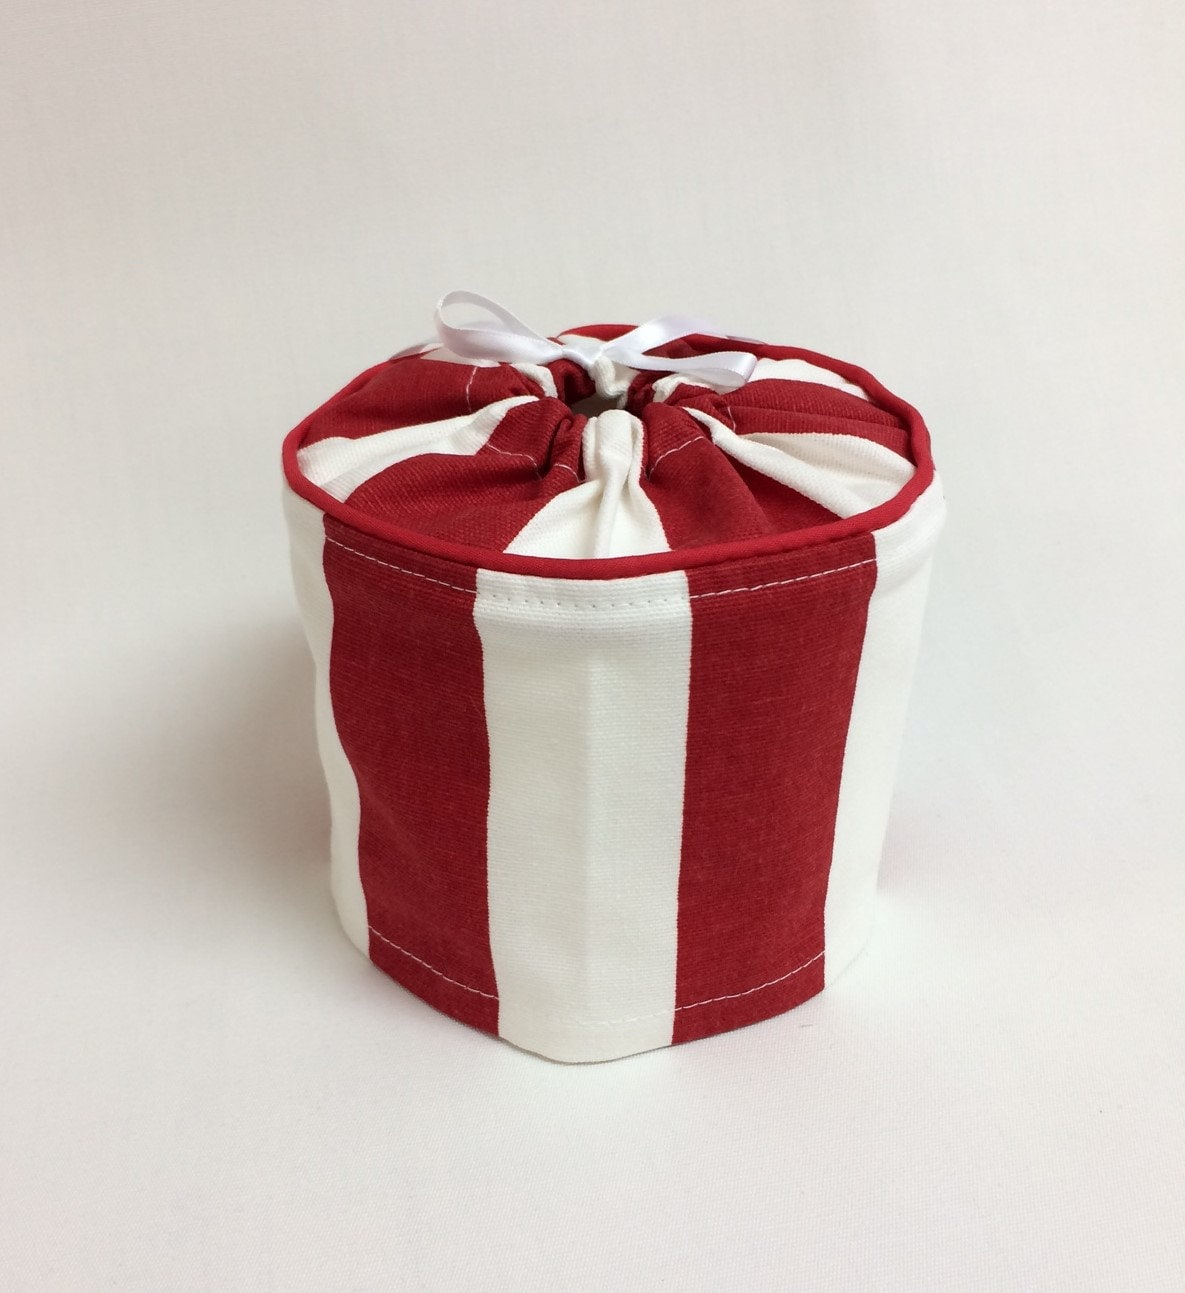 Covered Toilet Paper Storage Toilet Paper Cover Toilet Paper Storage Red And White